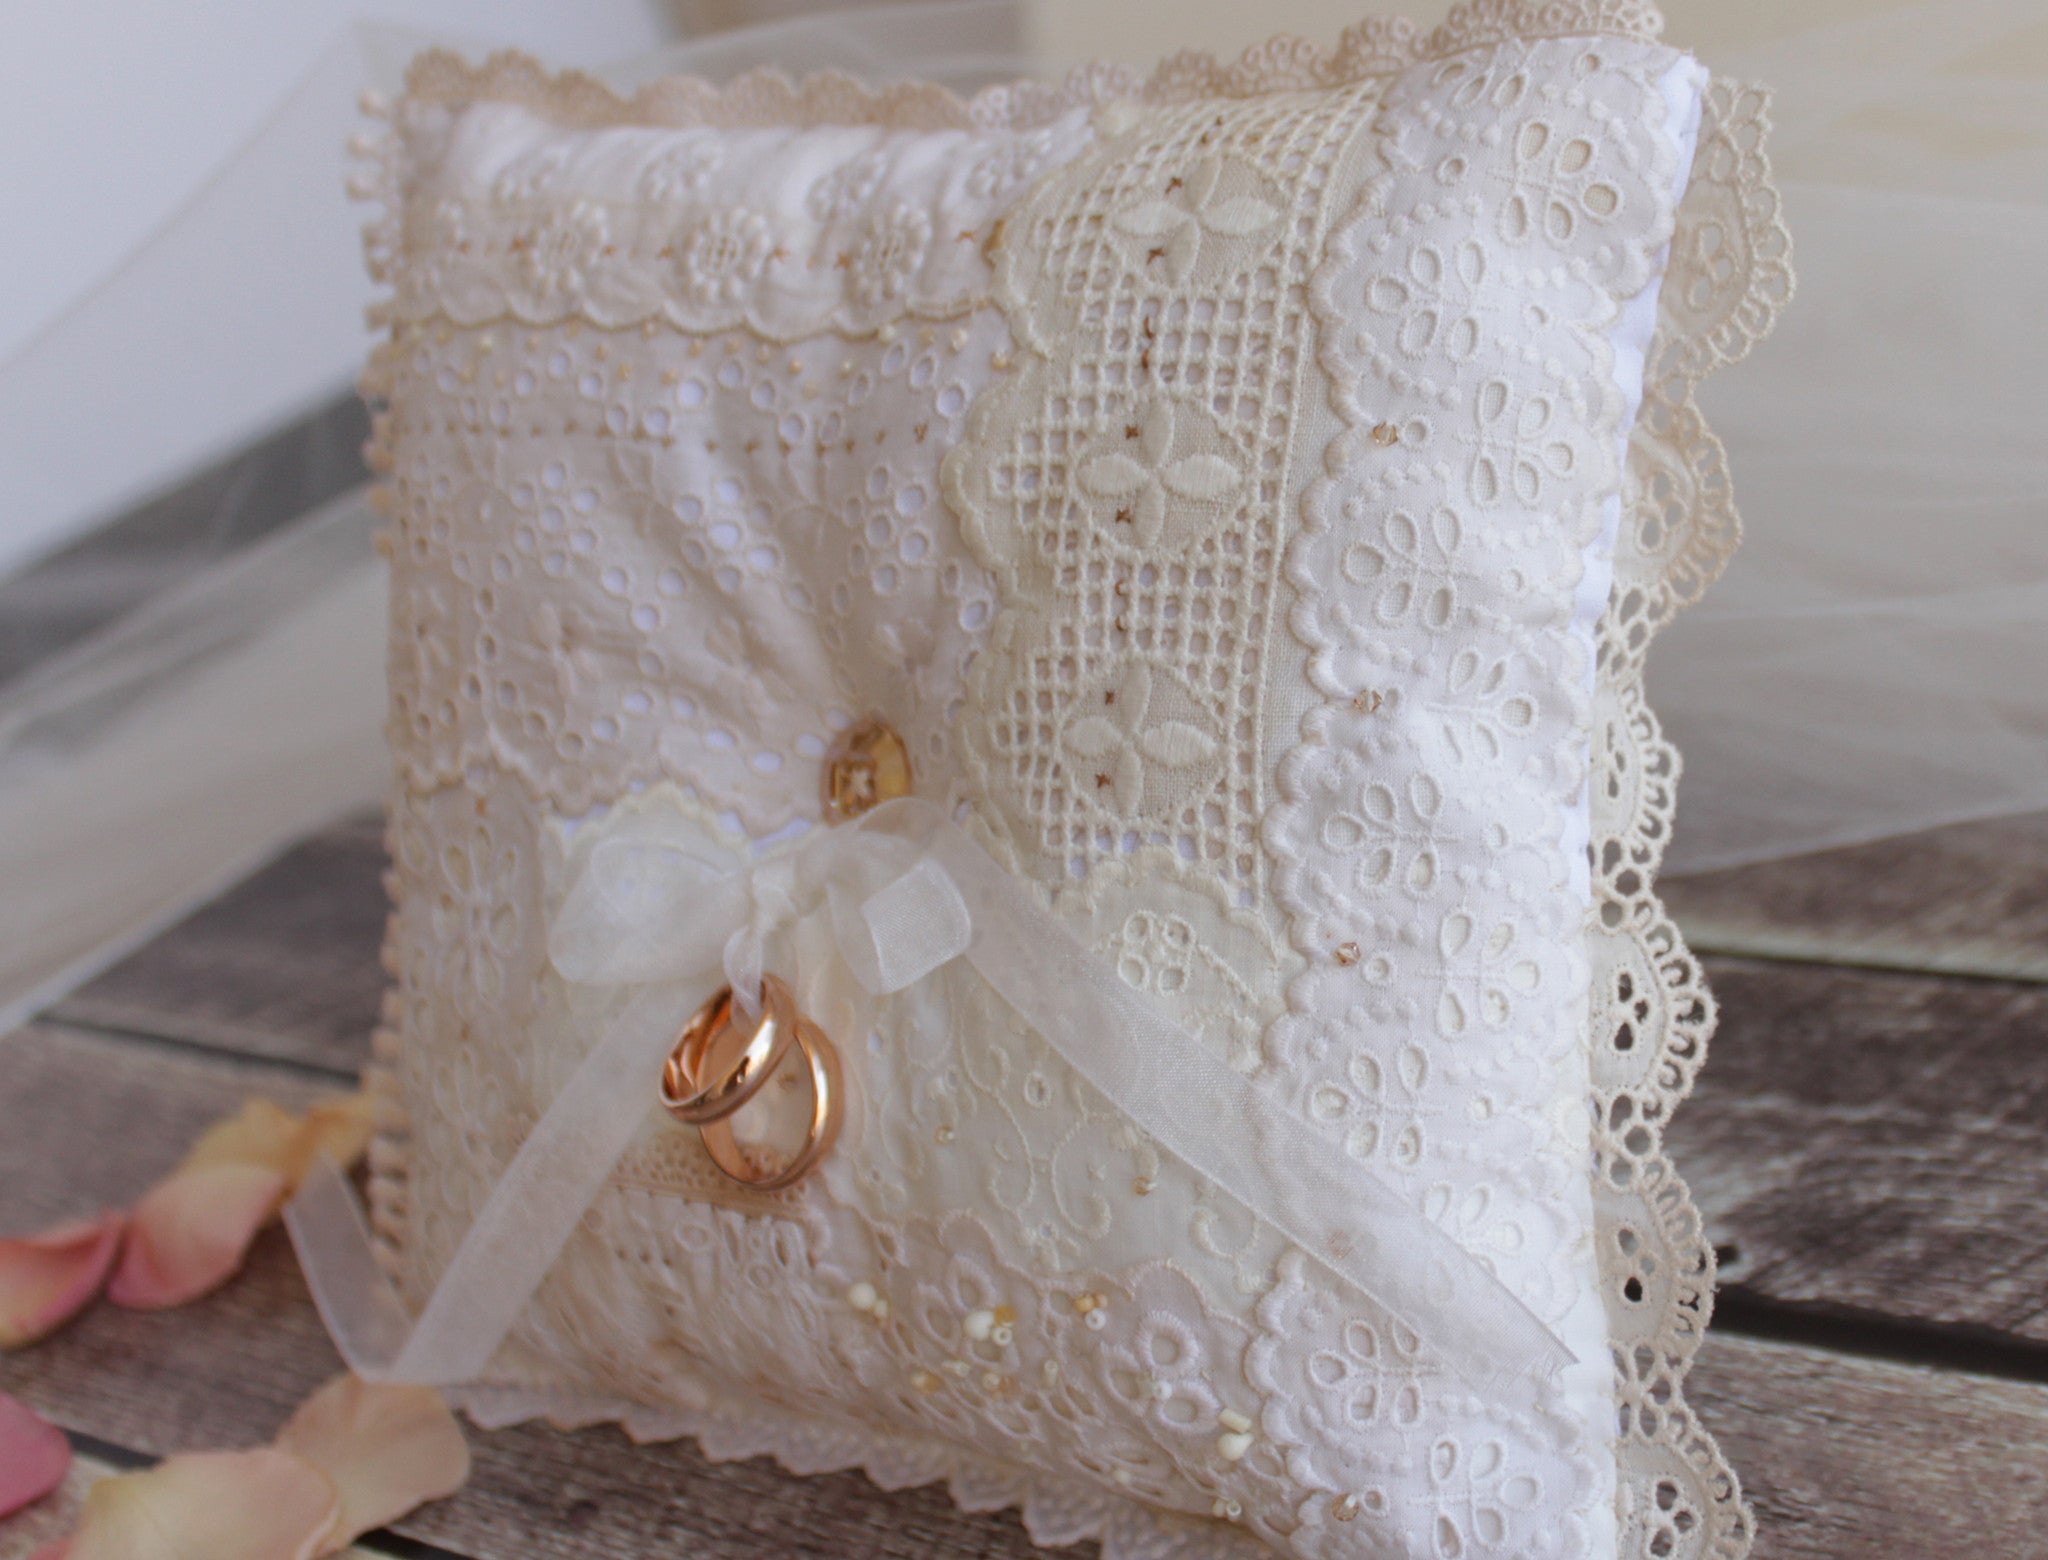 OOAK Hand sewn ring bearer pillow - made with hand dyed vintage laces and Swarovski button and beads